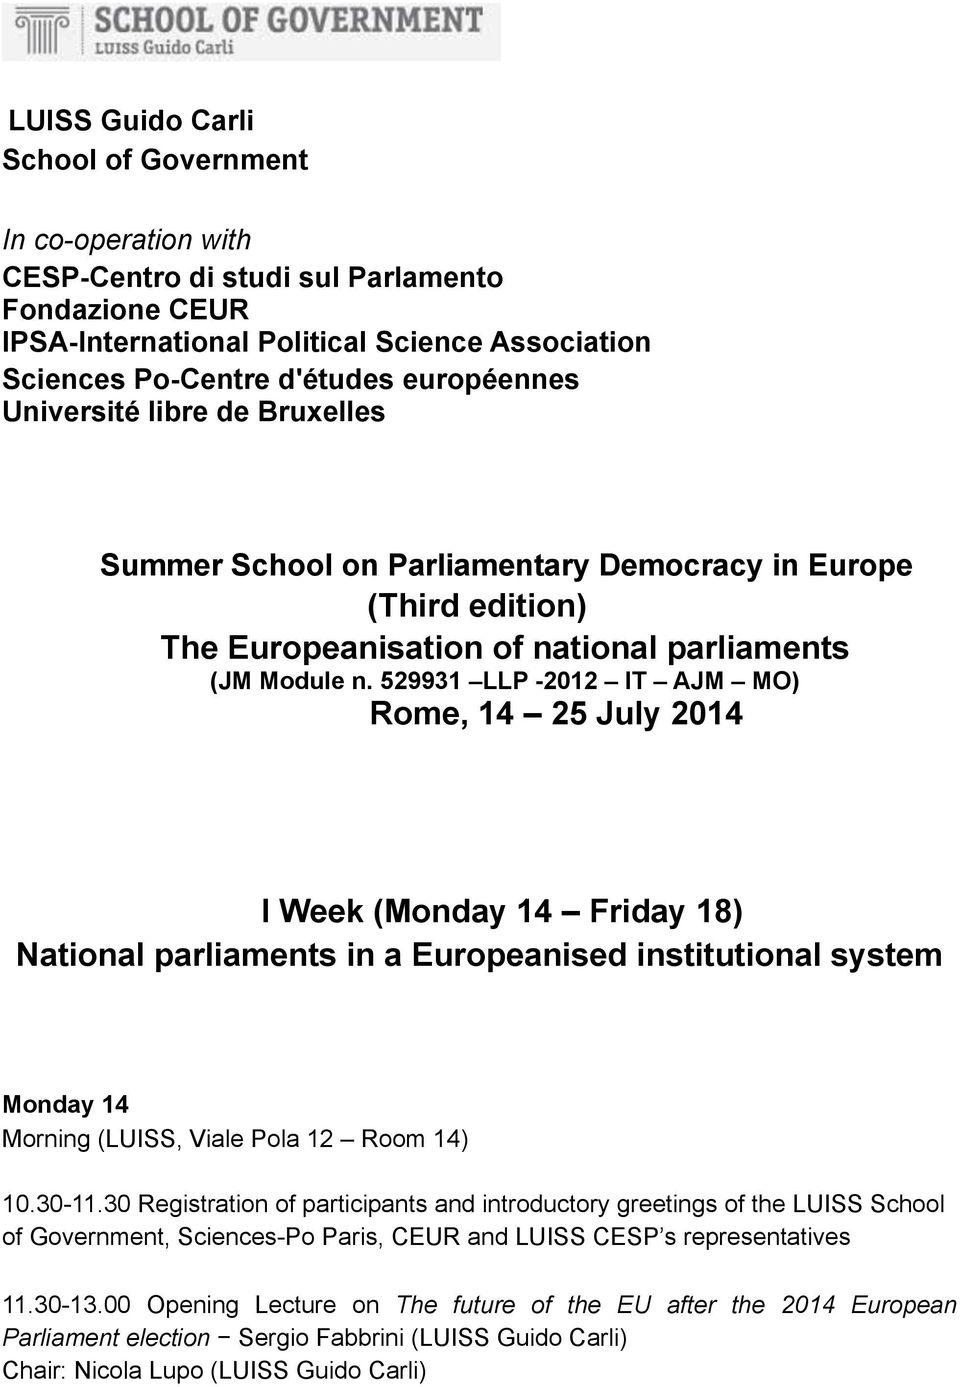 529931 LLP -2012 IT AJM MO) Rome, 14 25 July 2014 I Week (Monday 14 Friday 18) National parliaments in a Europeanised institutional system Monday 14 Morning (LUISS, Viale Pola 12 Room 14) 10.30-11.